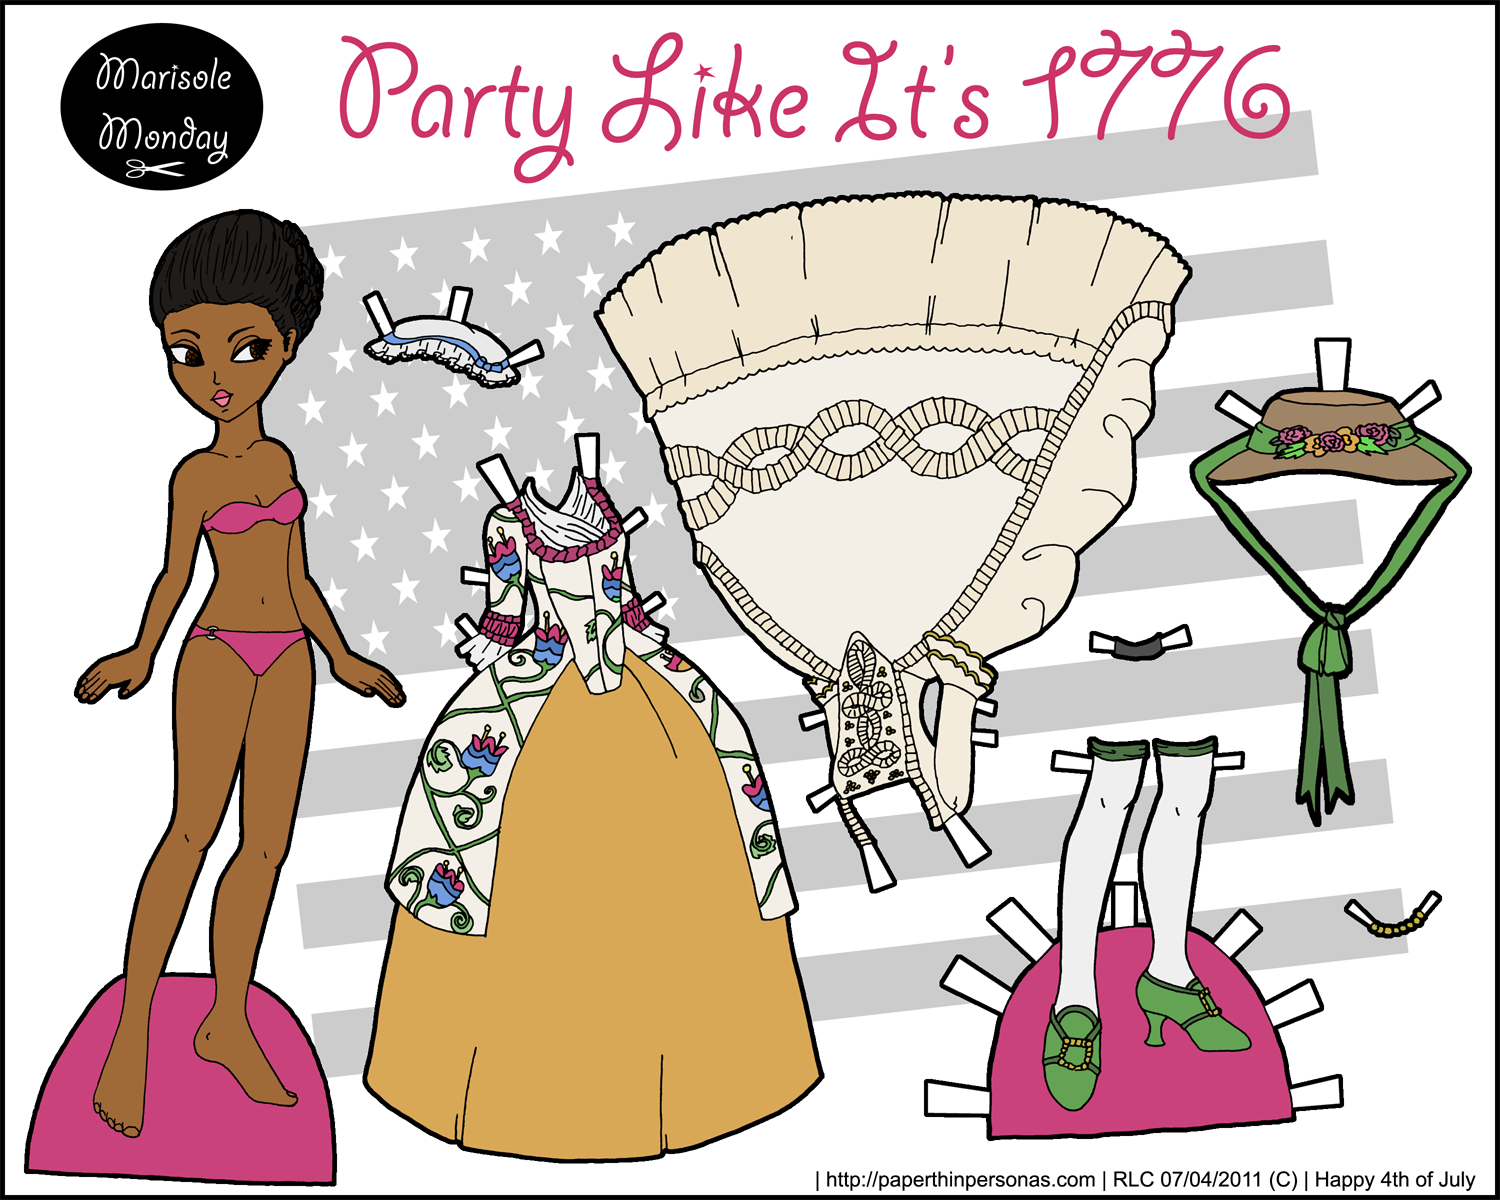 A historical paper doll wearing 18th century clothing celebrating the 4th of July in color whose free to print from paperthinpersonas.com.